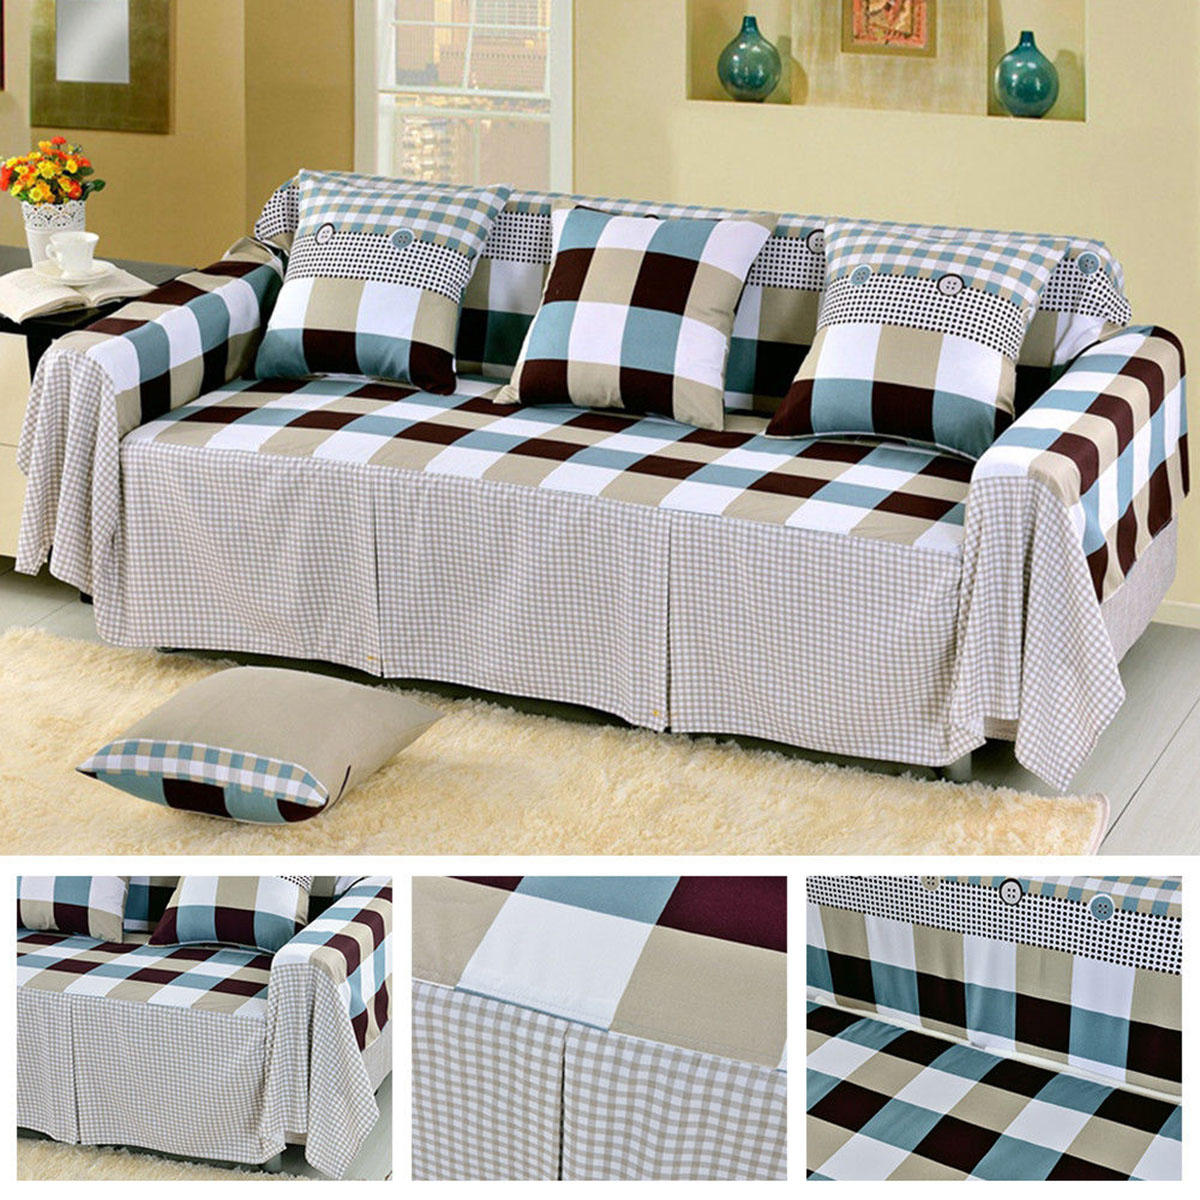 1/2/3/4 Seaters Sofa Easy Slipcover Stretch Protector Washable Soft Couch Chair Covers Protector